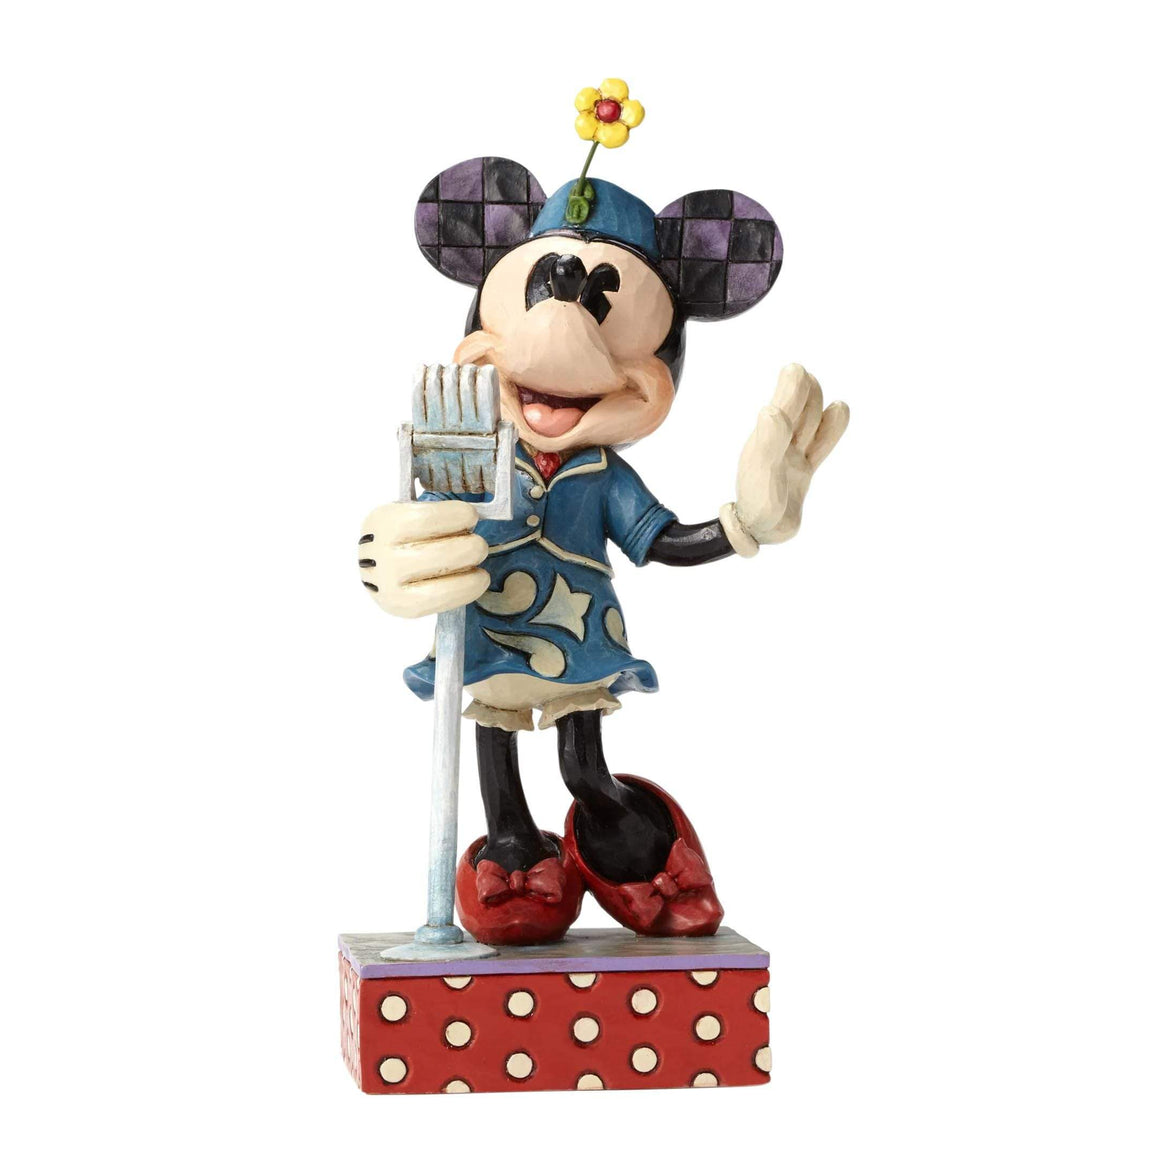 Sweet Harmony - Minnie Mouse Figurine - Disney Traditions Jim Shore